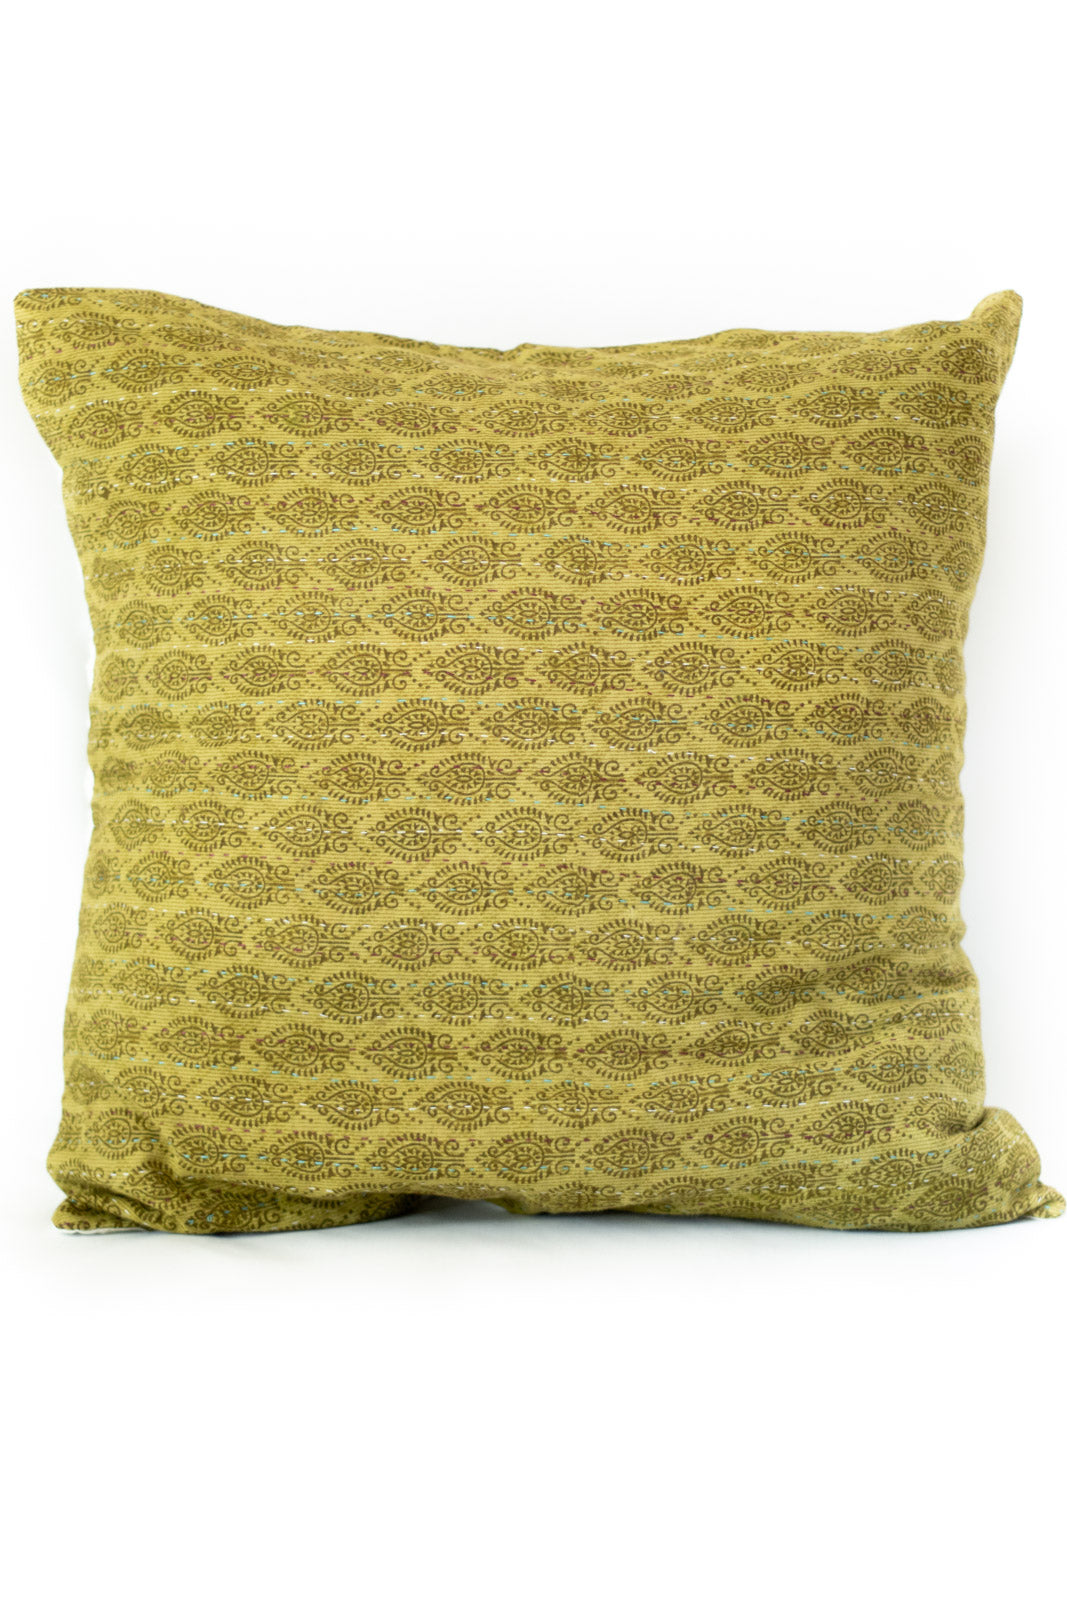 Unique no. 4 Kantha Pillow Cover